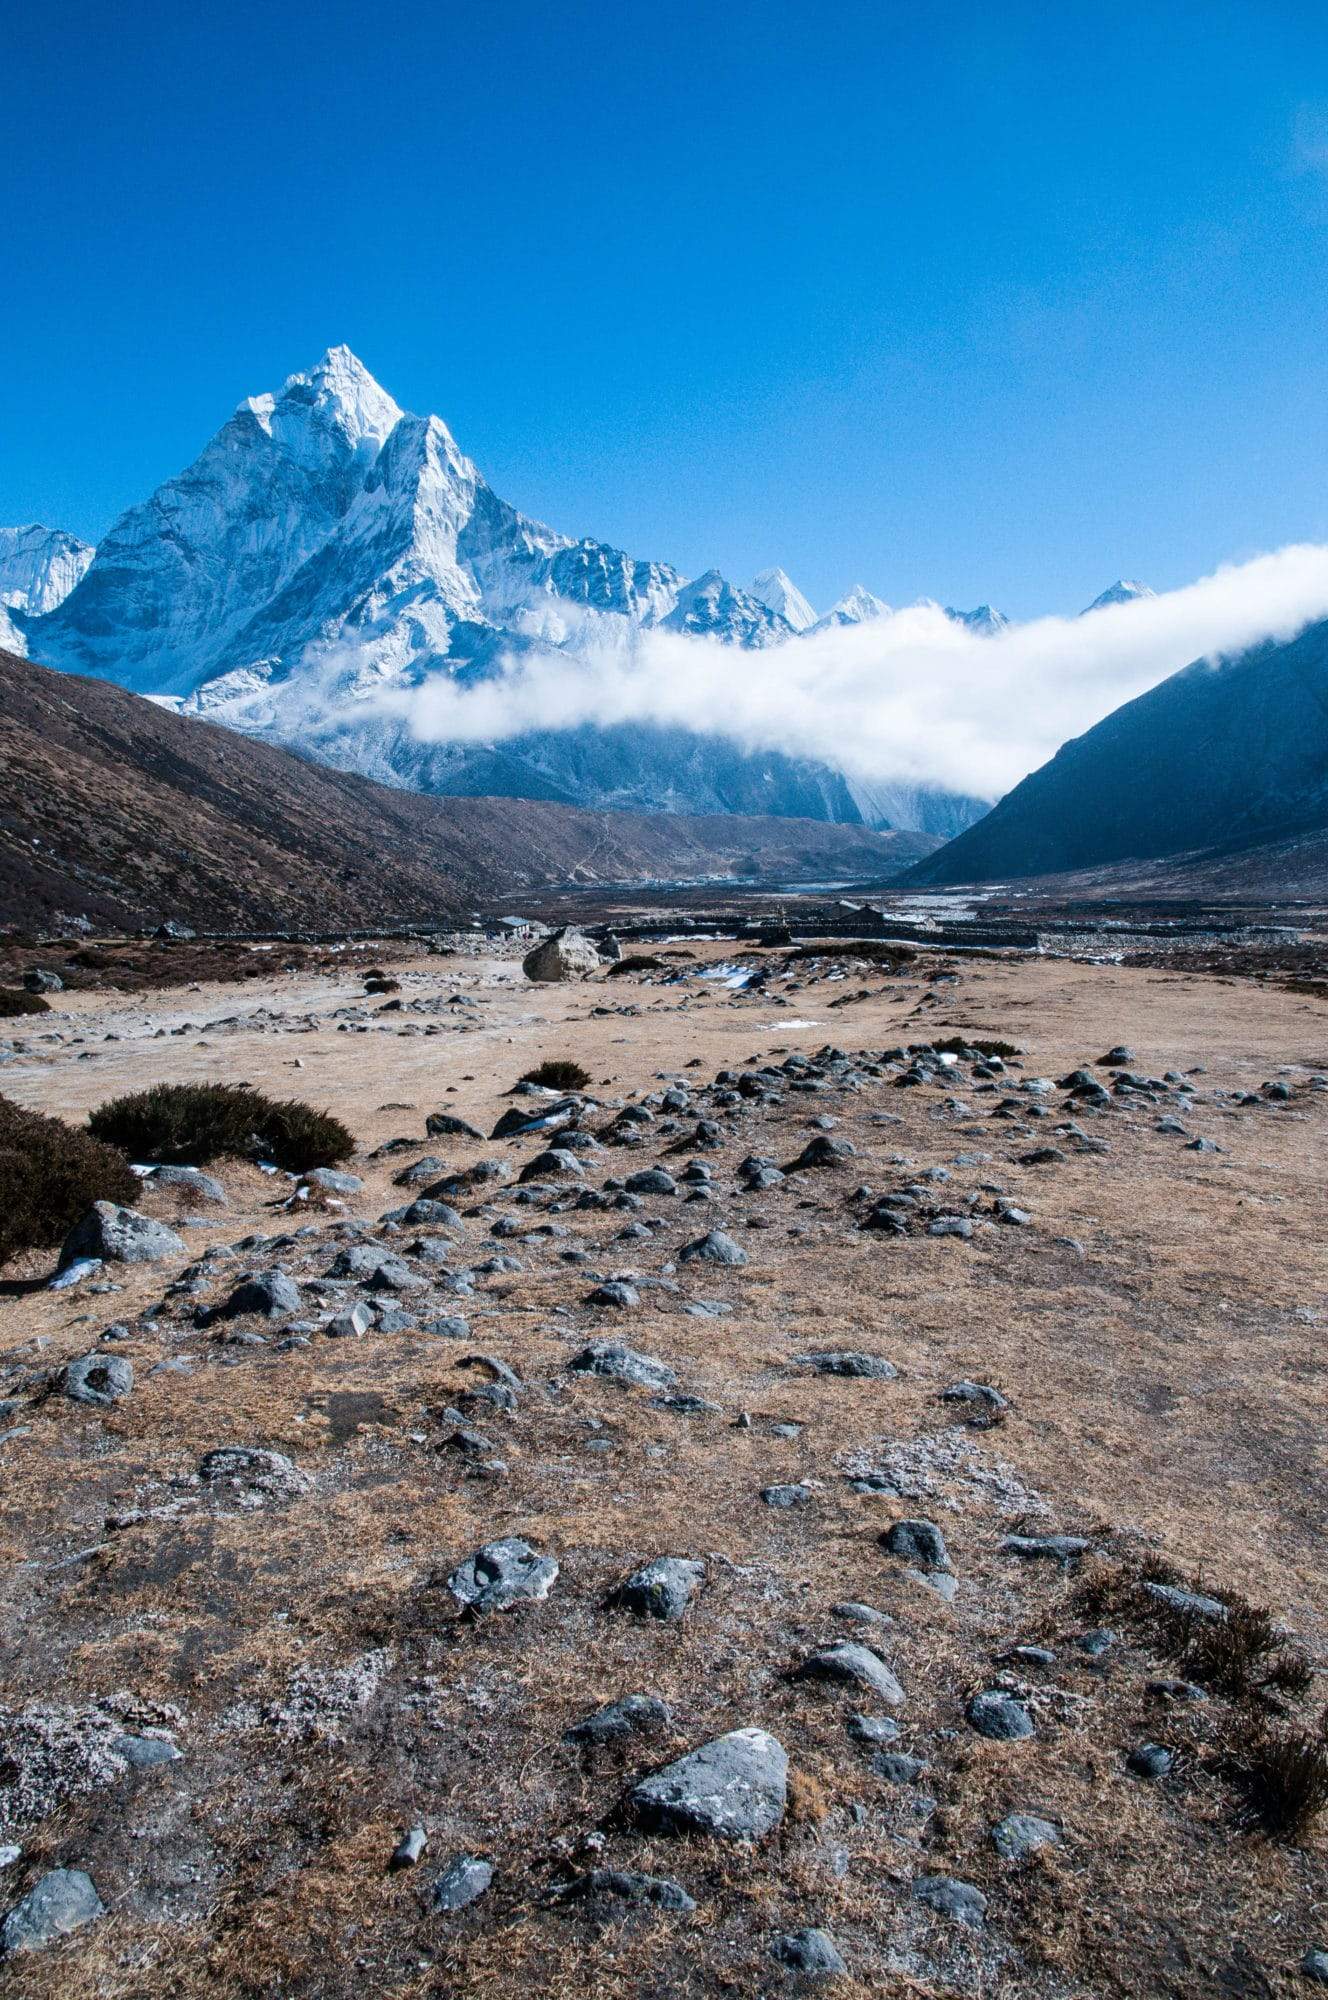 Walking down towards Pheriche with Ama Dablam in the distance